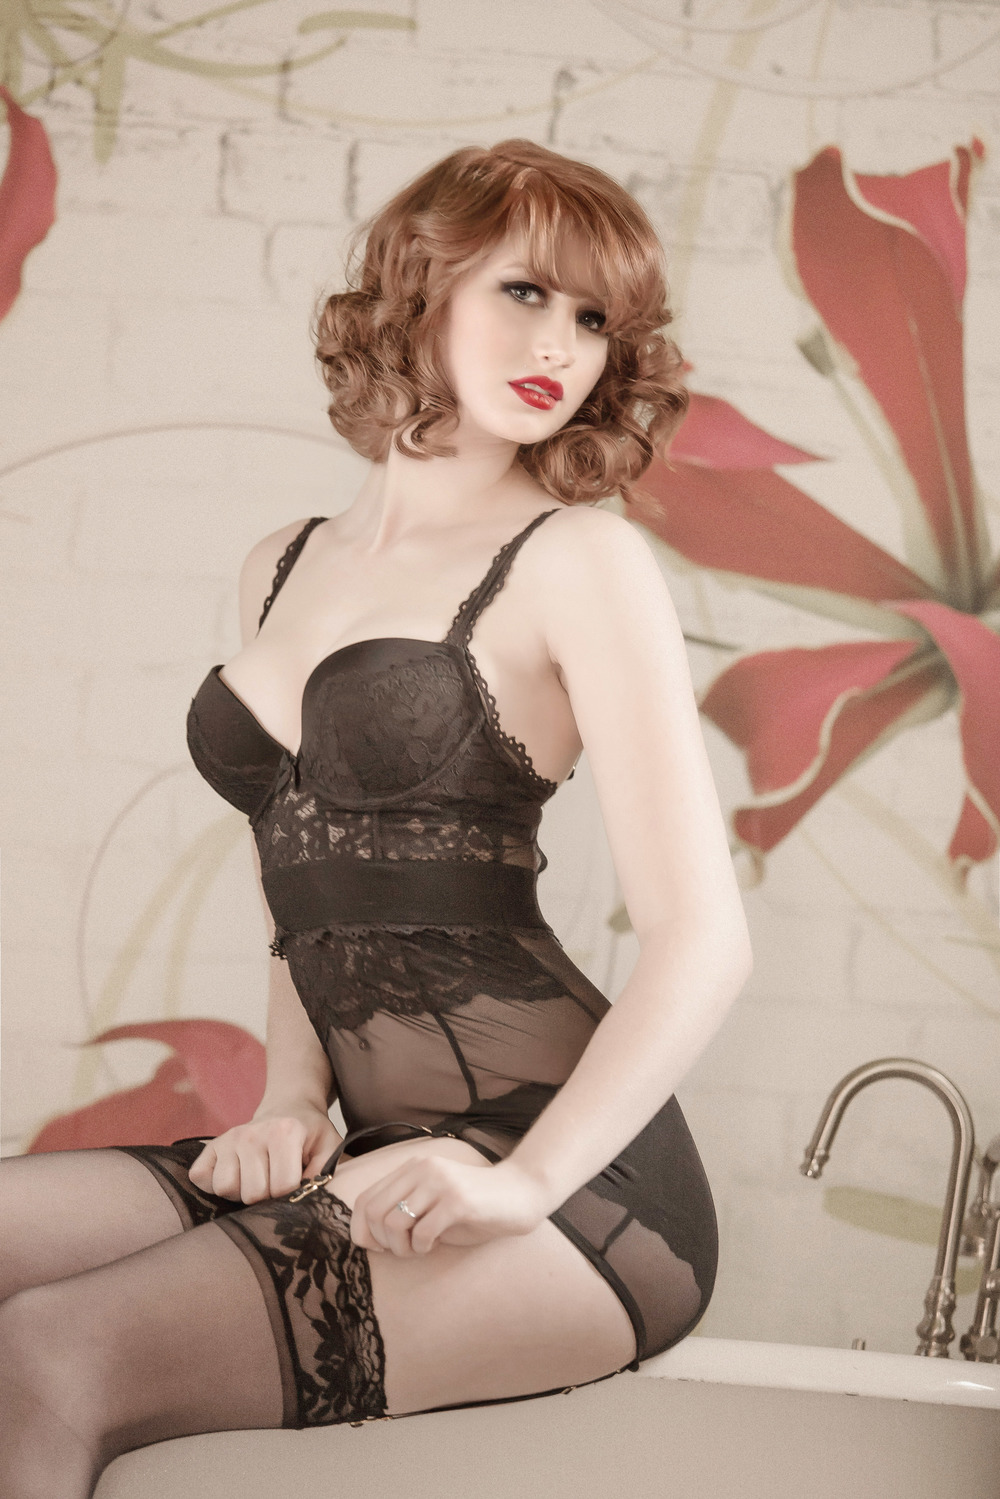 boudoir-vintage-what-to-wear-sexy